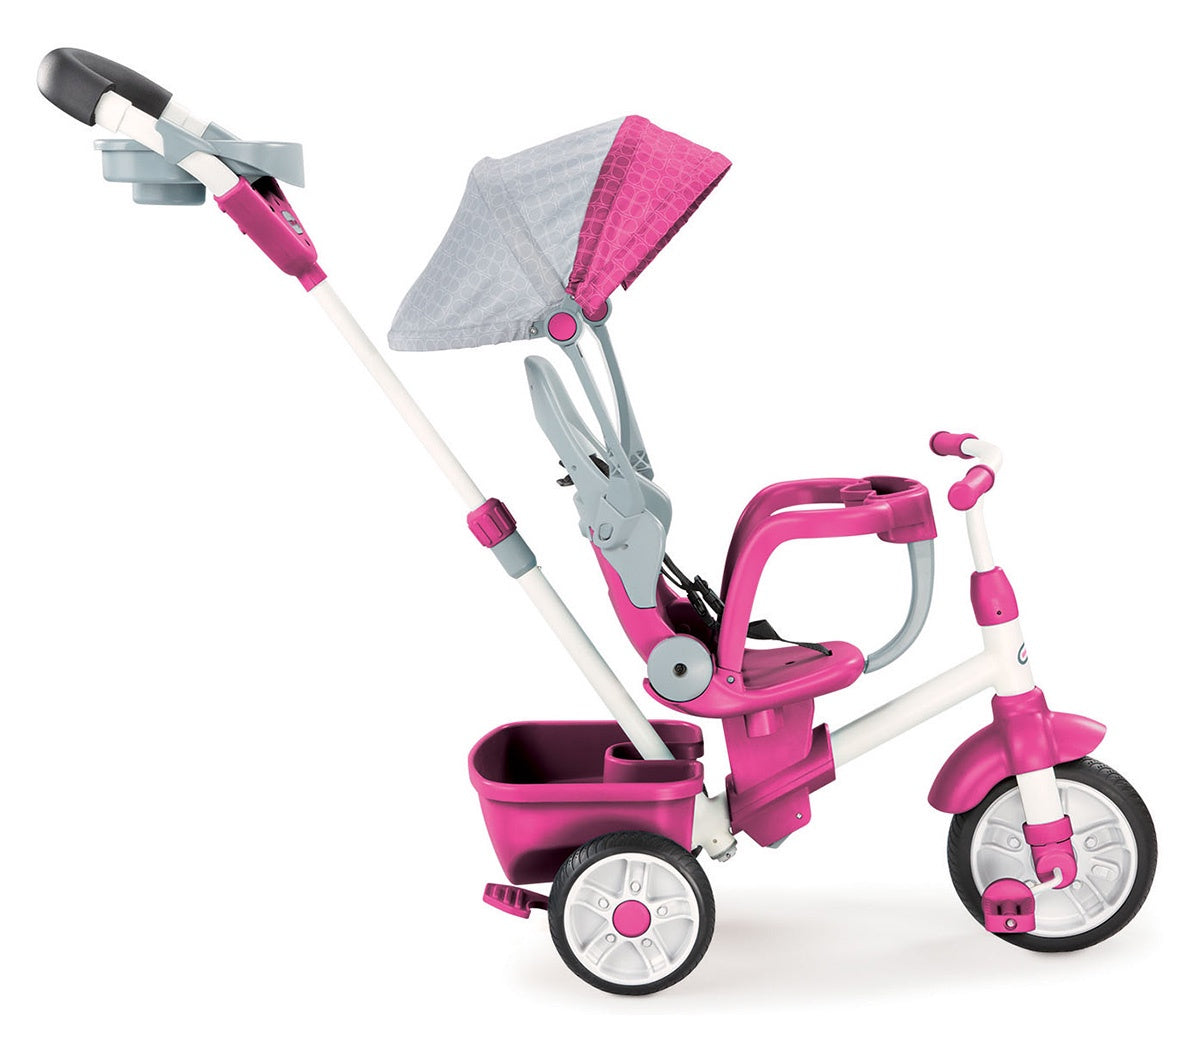 Little Tikes Perfect Fit 4 in 1 Trike Pink